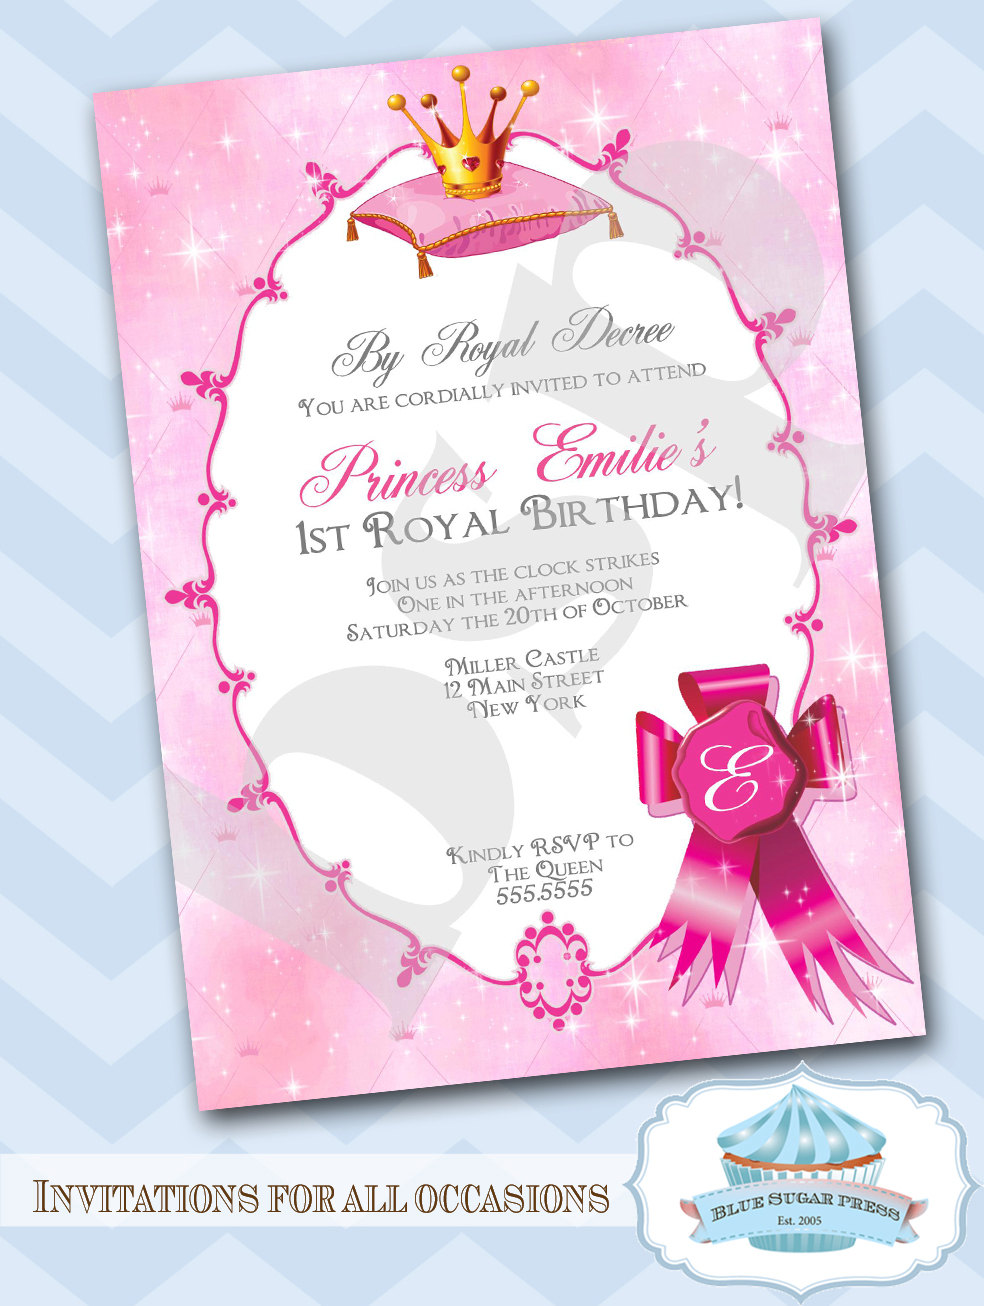 printable princess party invitations wedding invitation sample princess party printable birthday invitation template